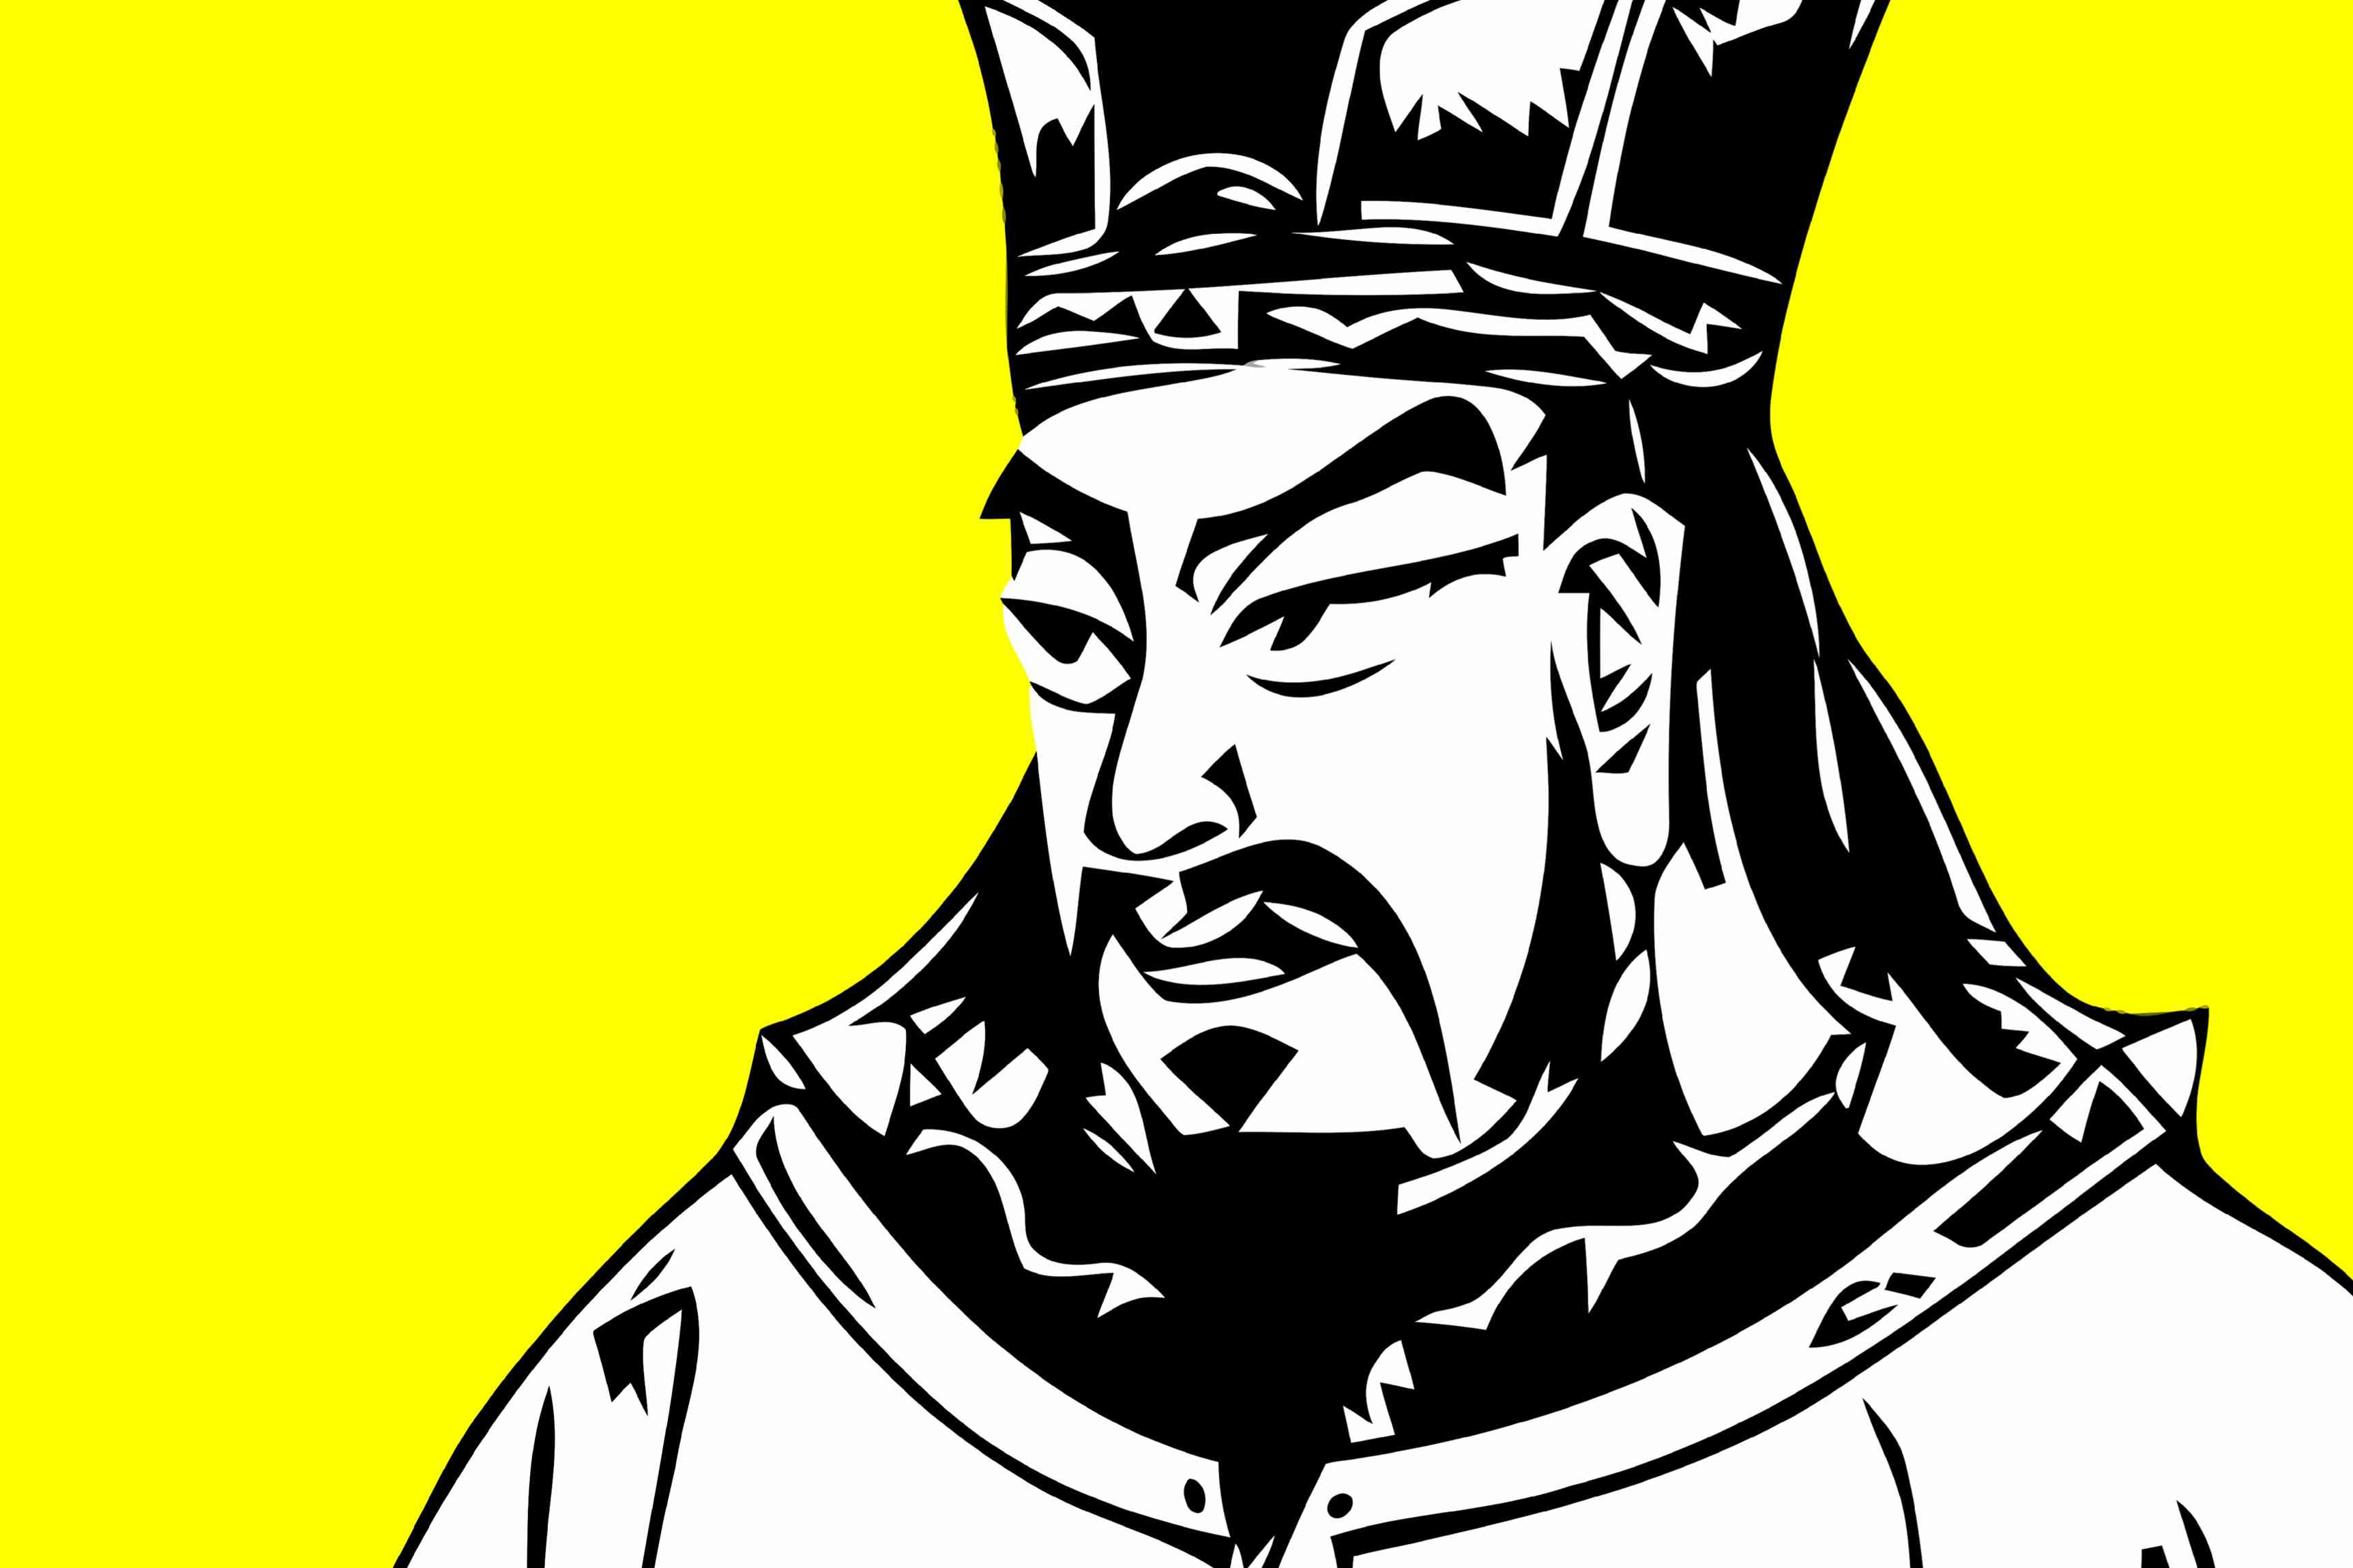 The ancient soldier Sun Tzu in a modern style with thick